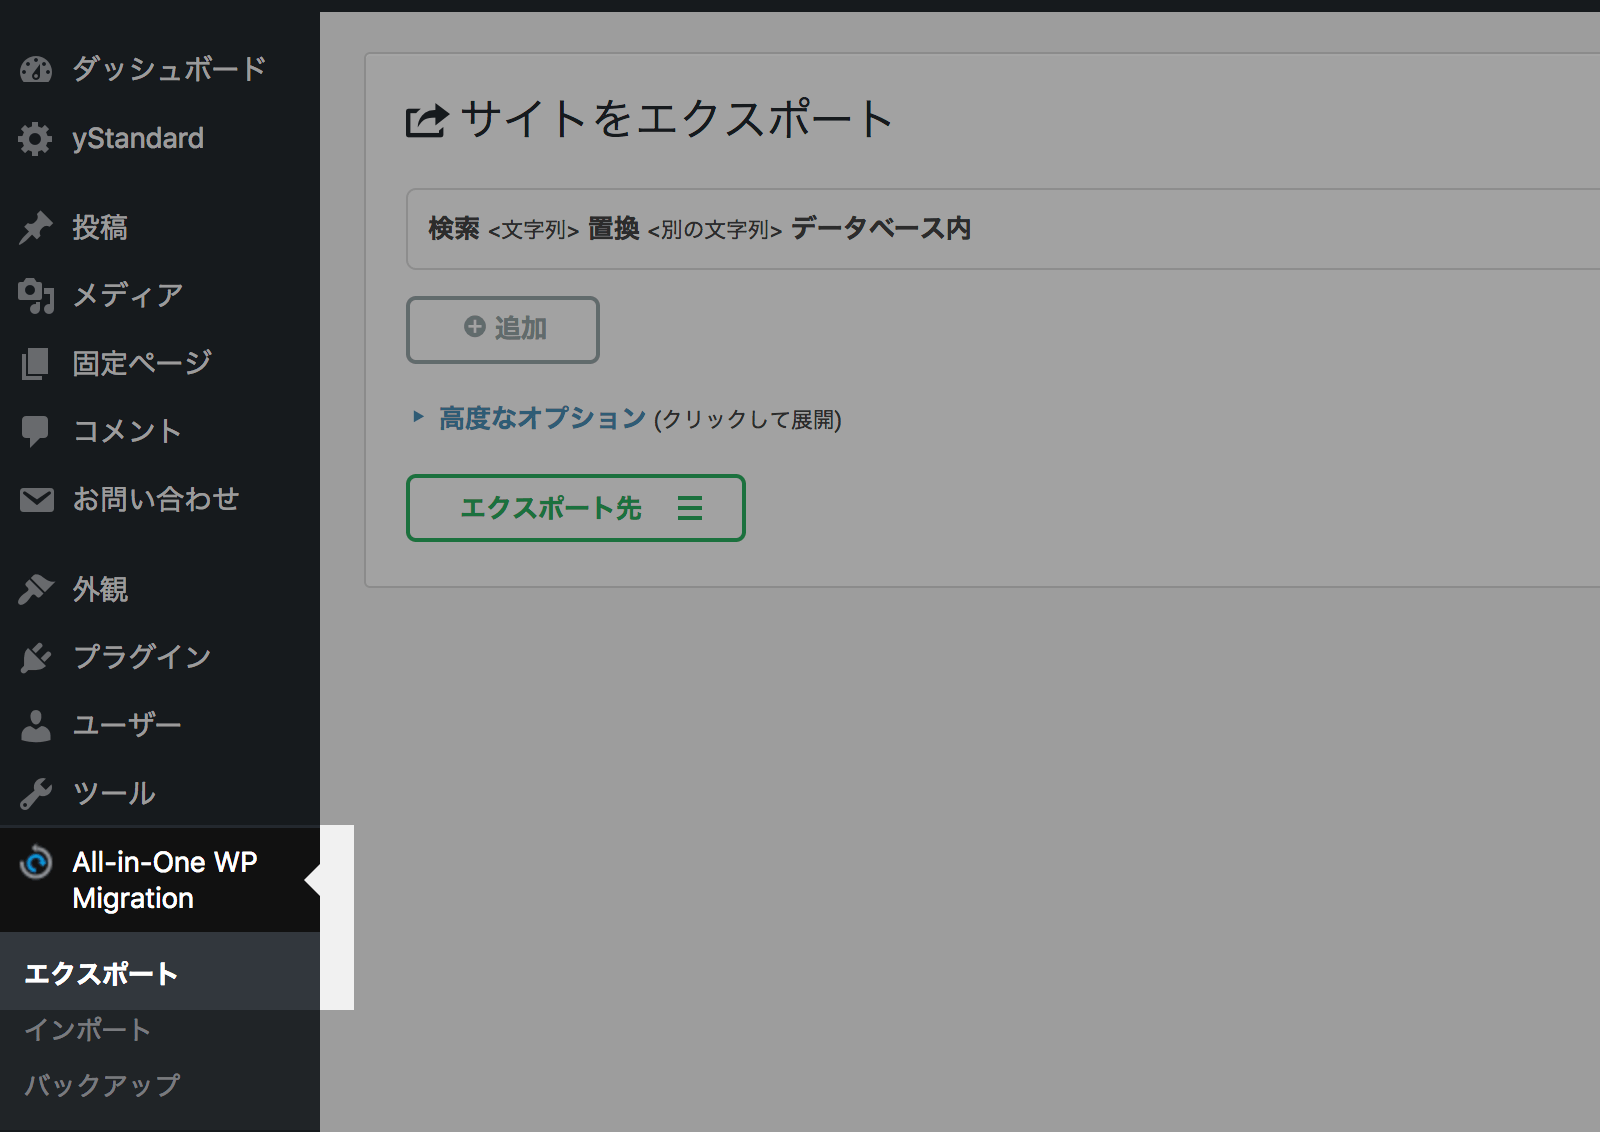 「All-in-One WP Migration」の「エクスポート」メニューを開く